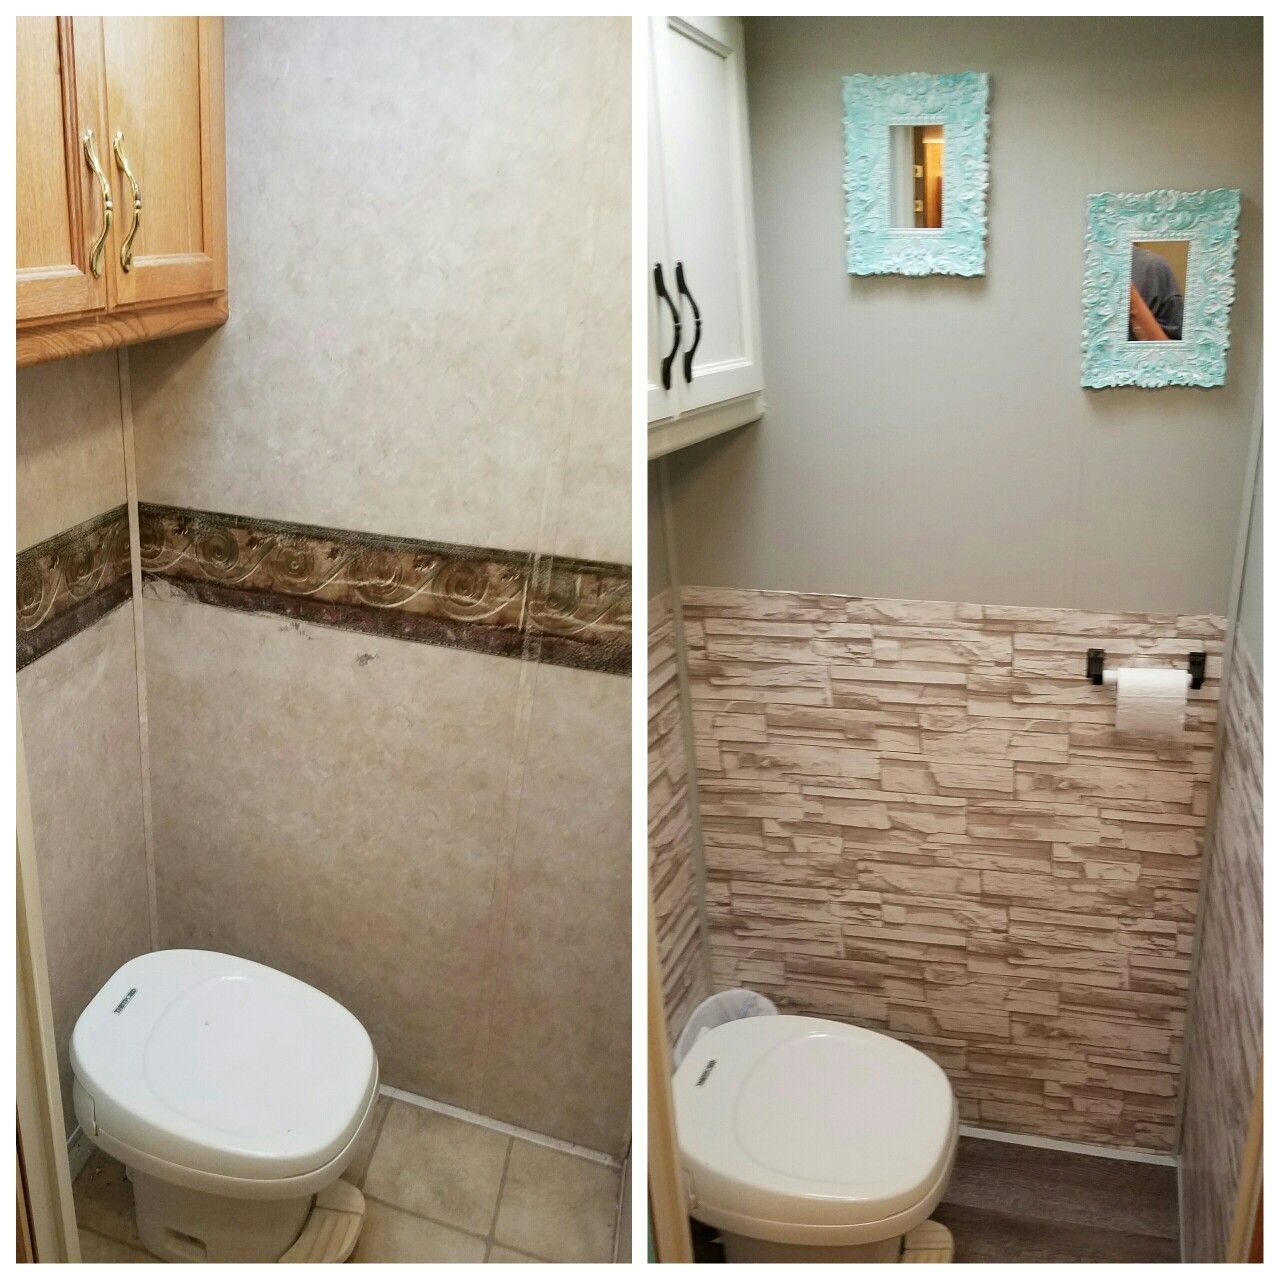 Stick on tiles for bathroom walls - Camper Bathroom Remodel I Think I Can Get Those Peel And Stick Glass Tiles And Have